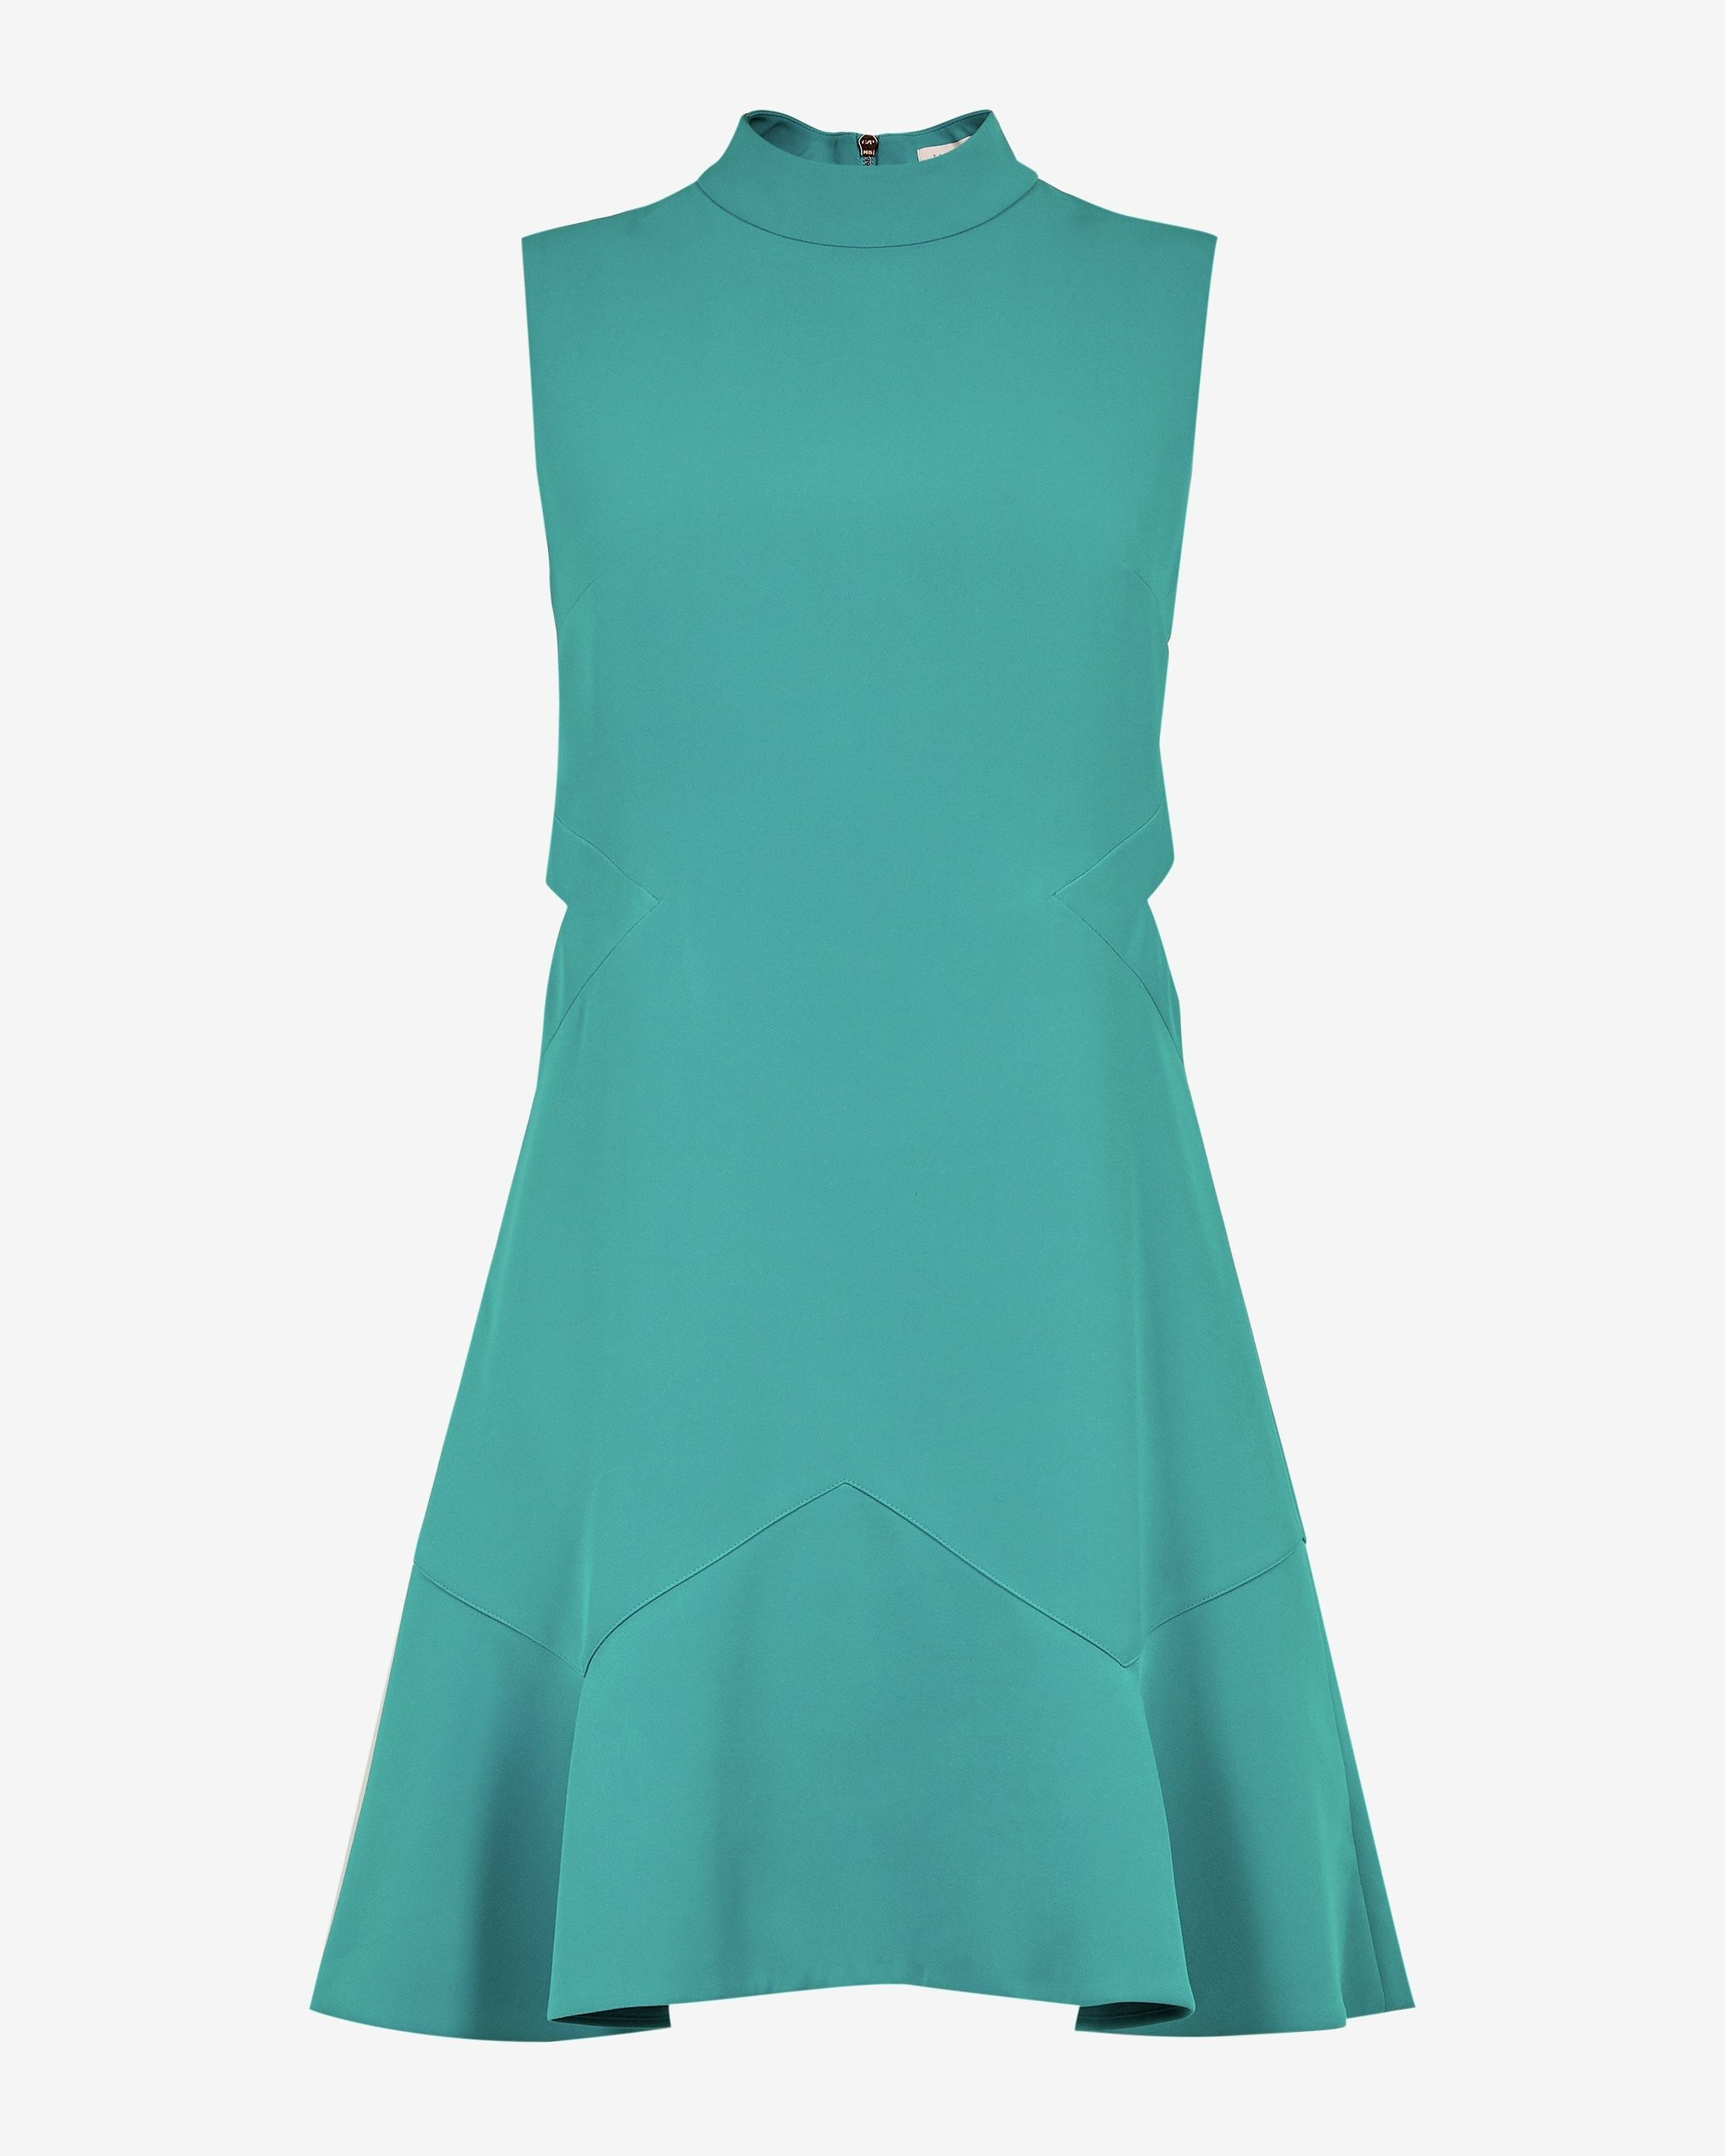 Ted Baker Cormier Cut Out Fluted Shift Dress in Turquoise